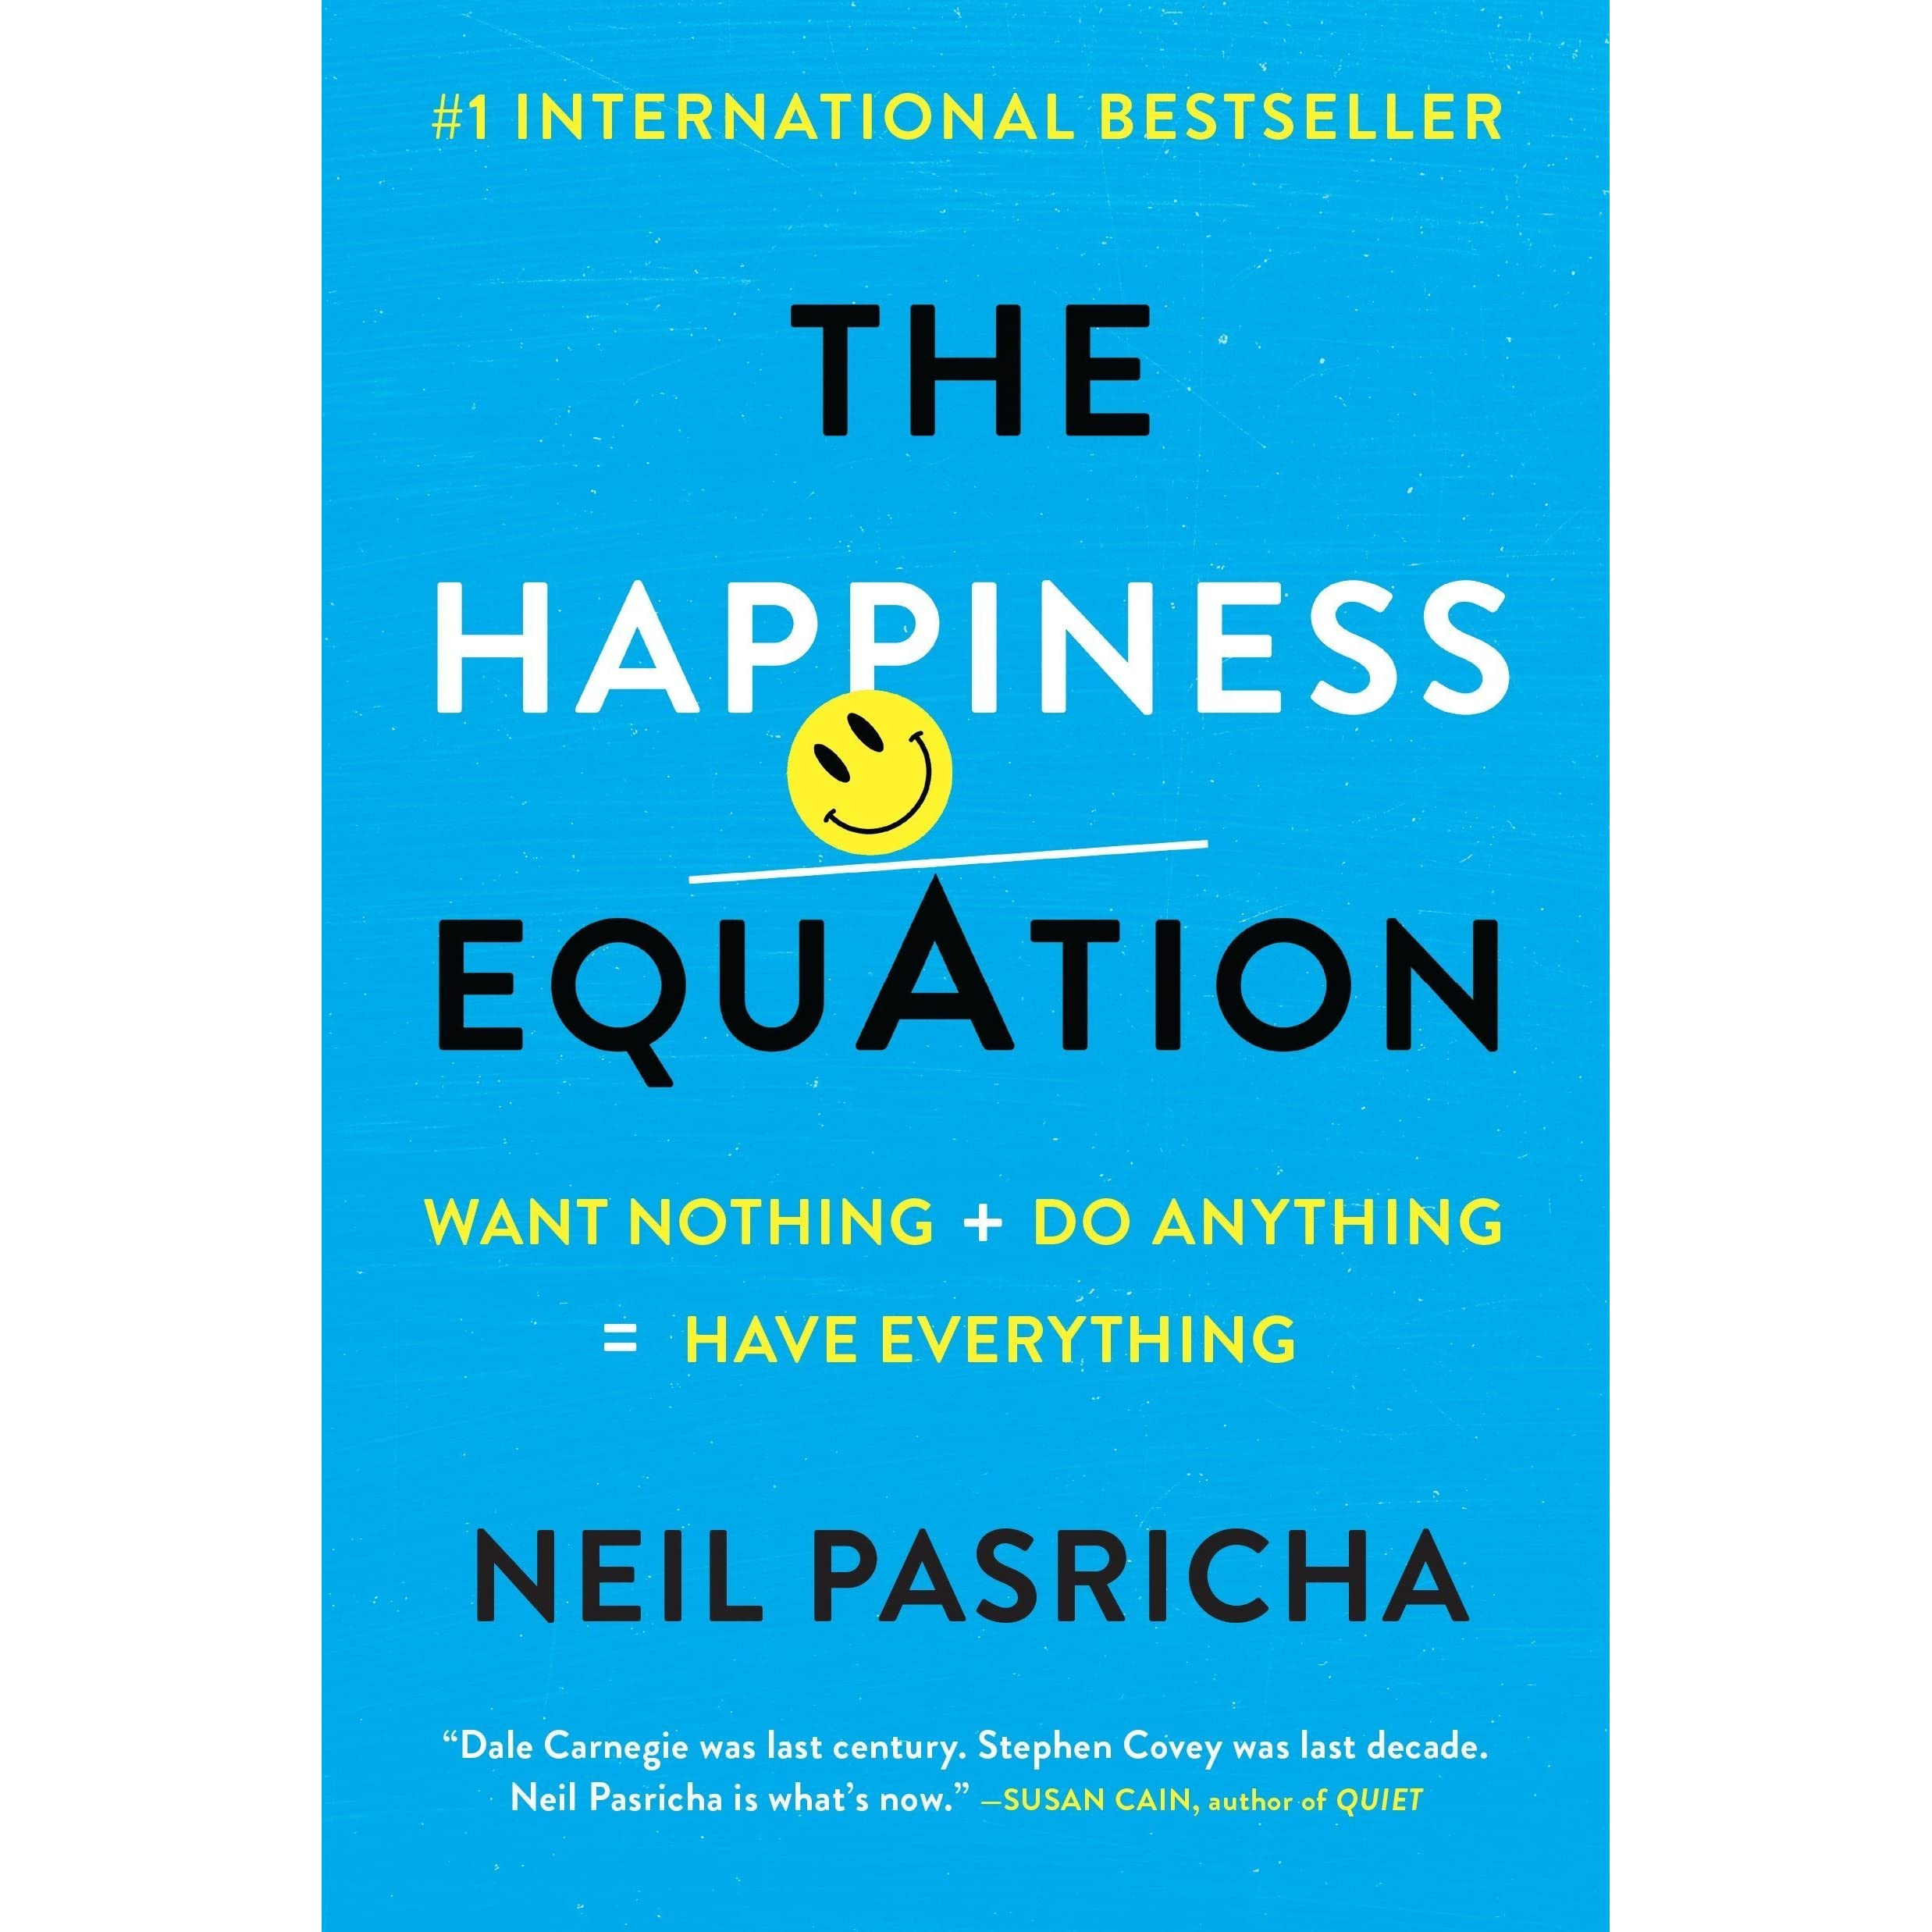 The Happiness Equation: Want Nothing + Do Anything = Have